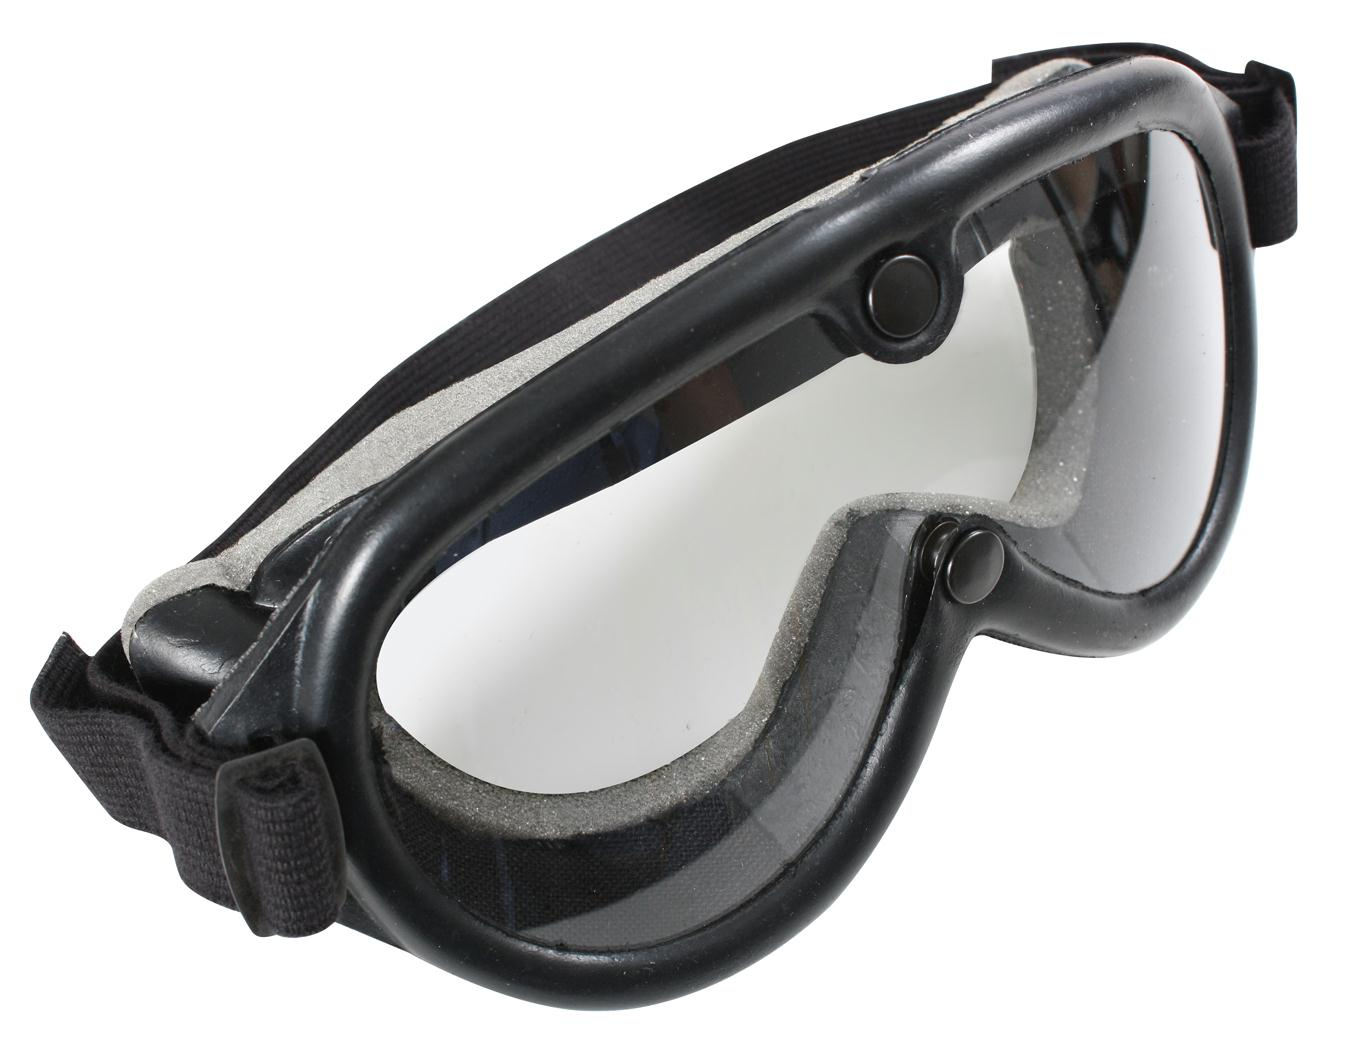 Genuine G.I. Type Sun, Wind & Dust Goggles